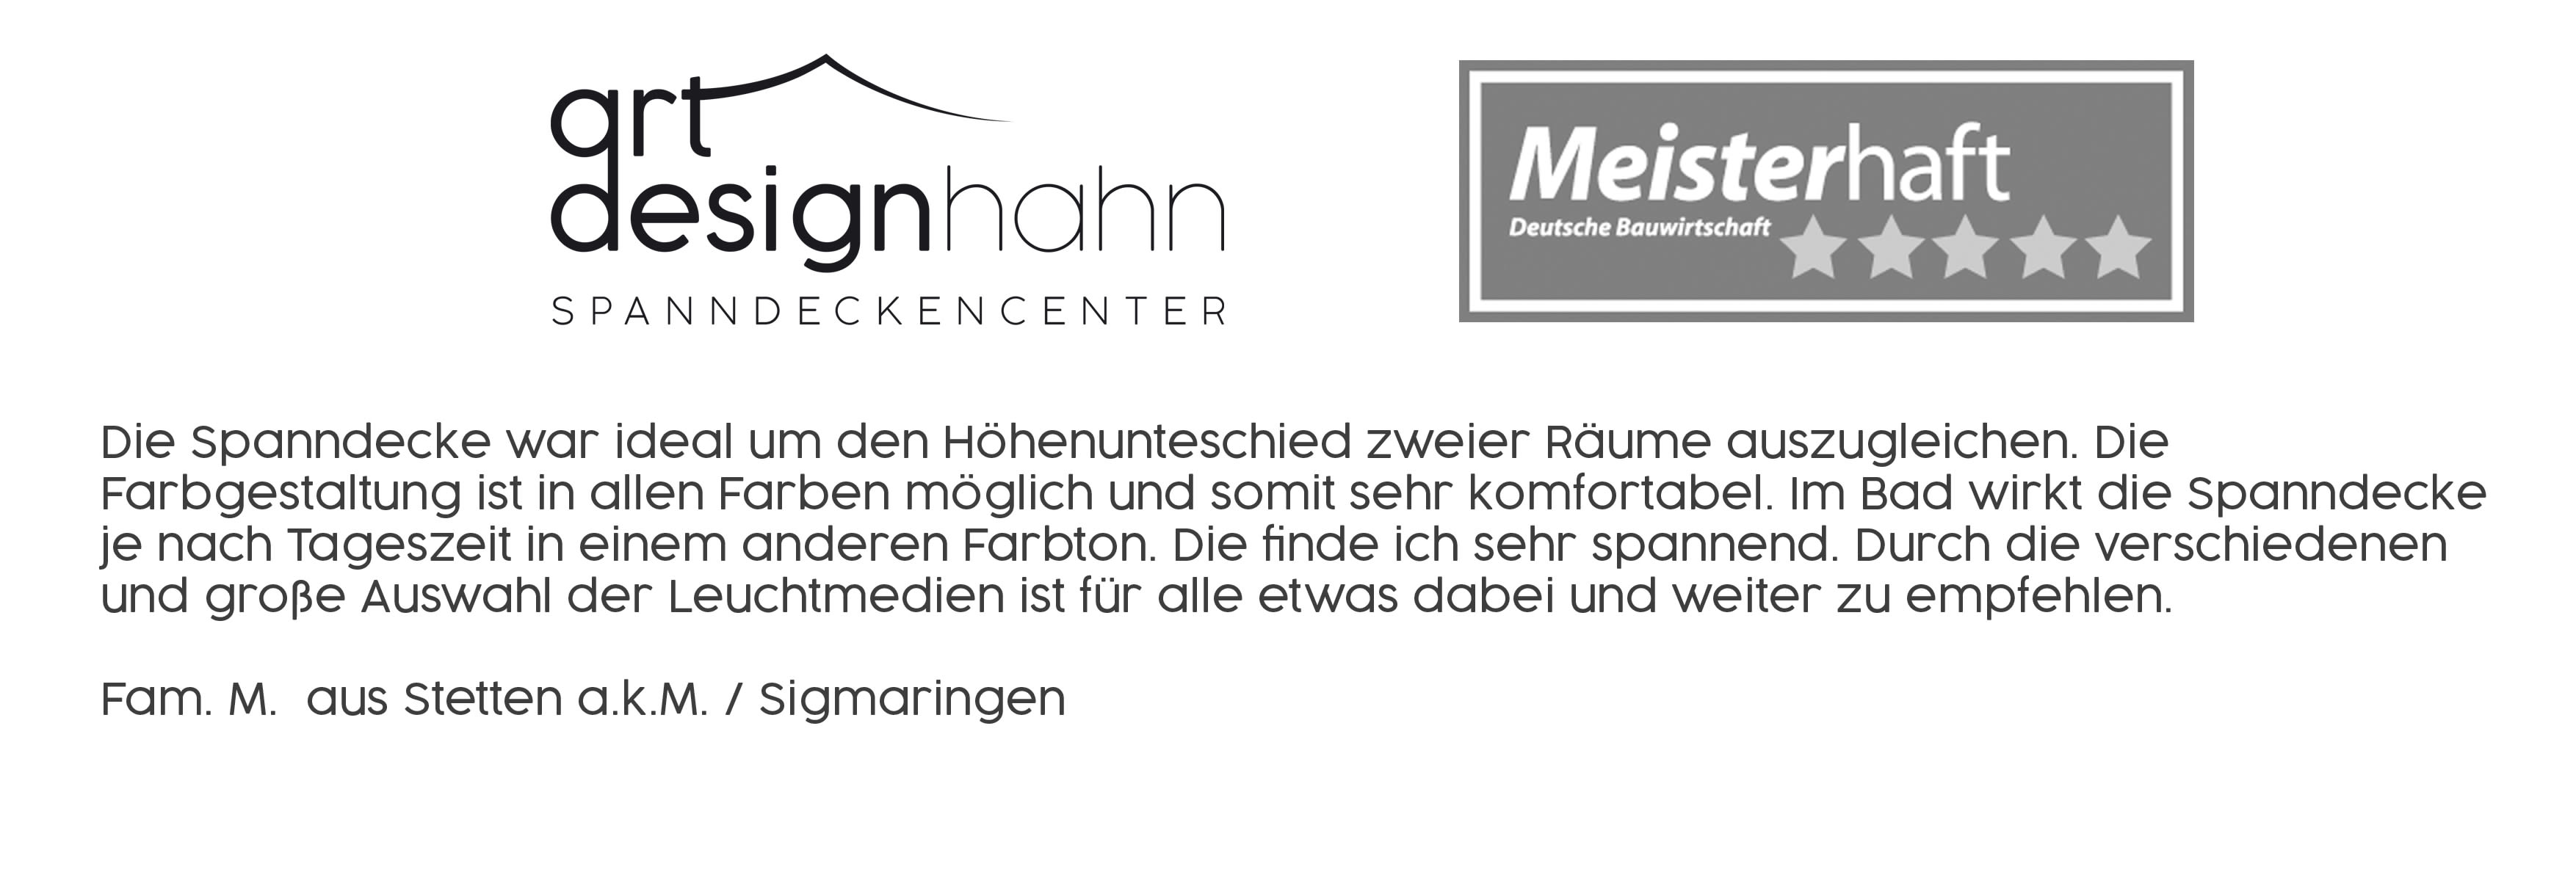 Art Design Hahn Meisterhafte Rezension 36